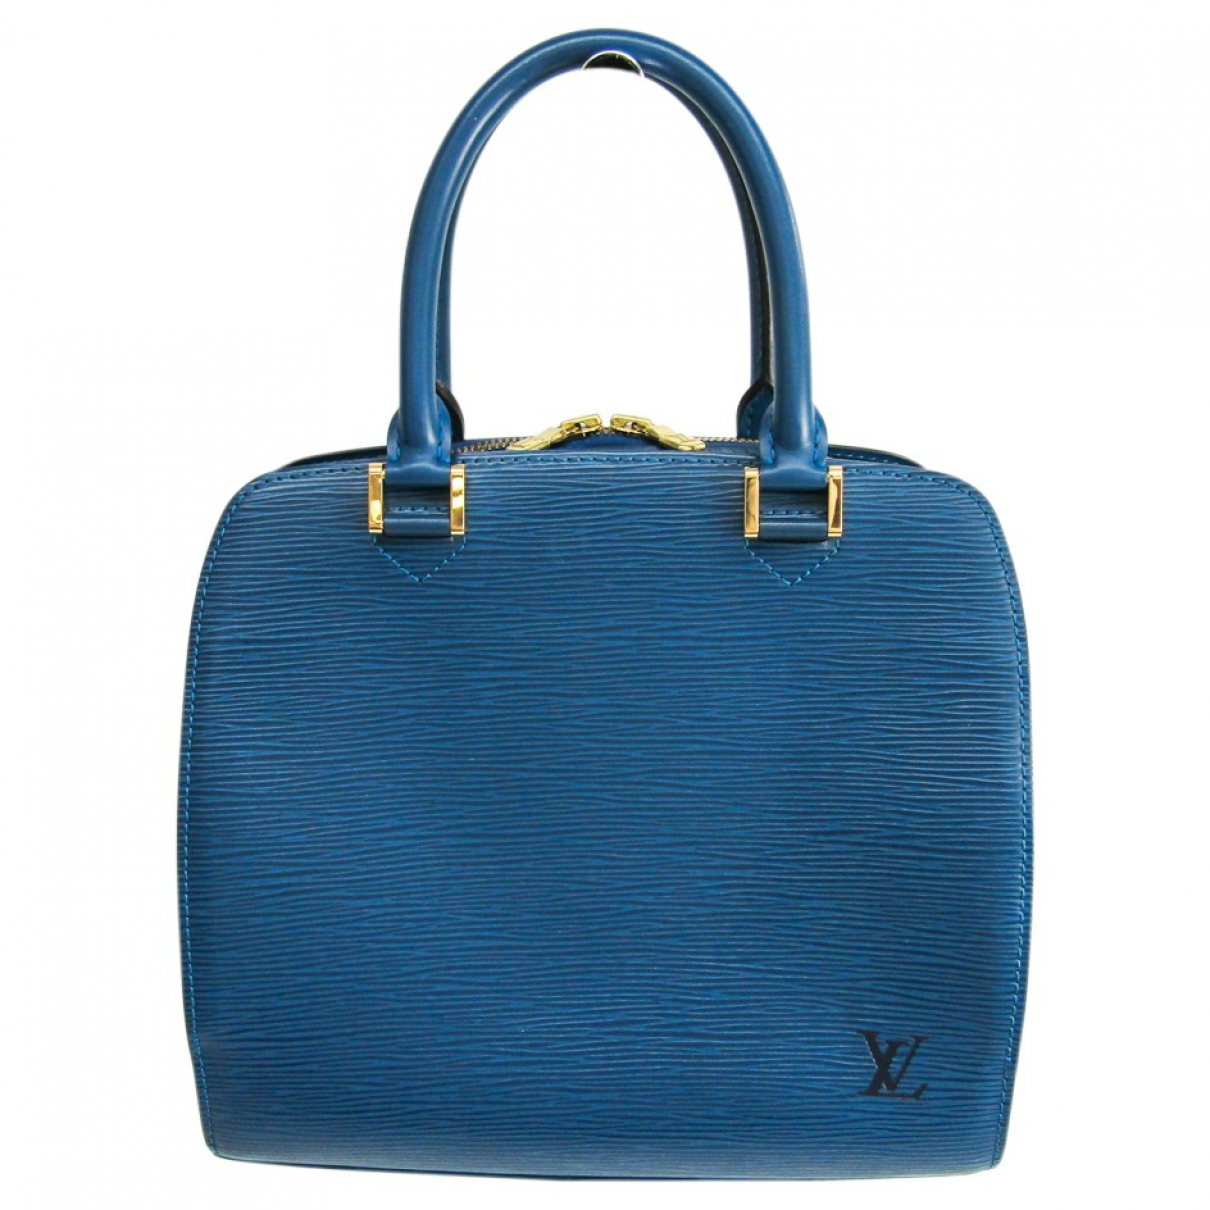 Louis Vuitton Pont Neuf Vintage  Blue Leather handbag for Women N